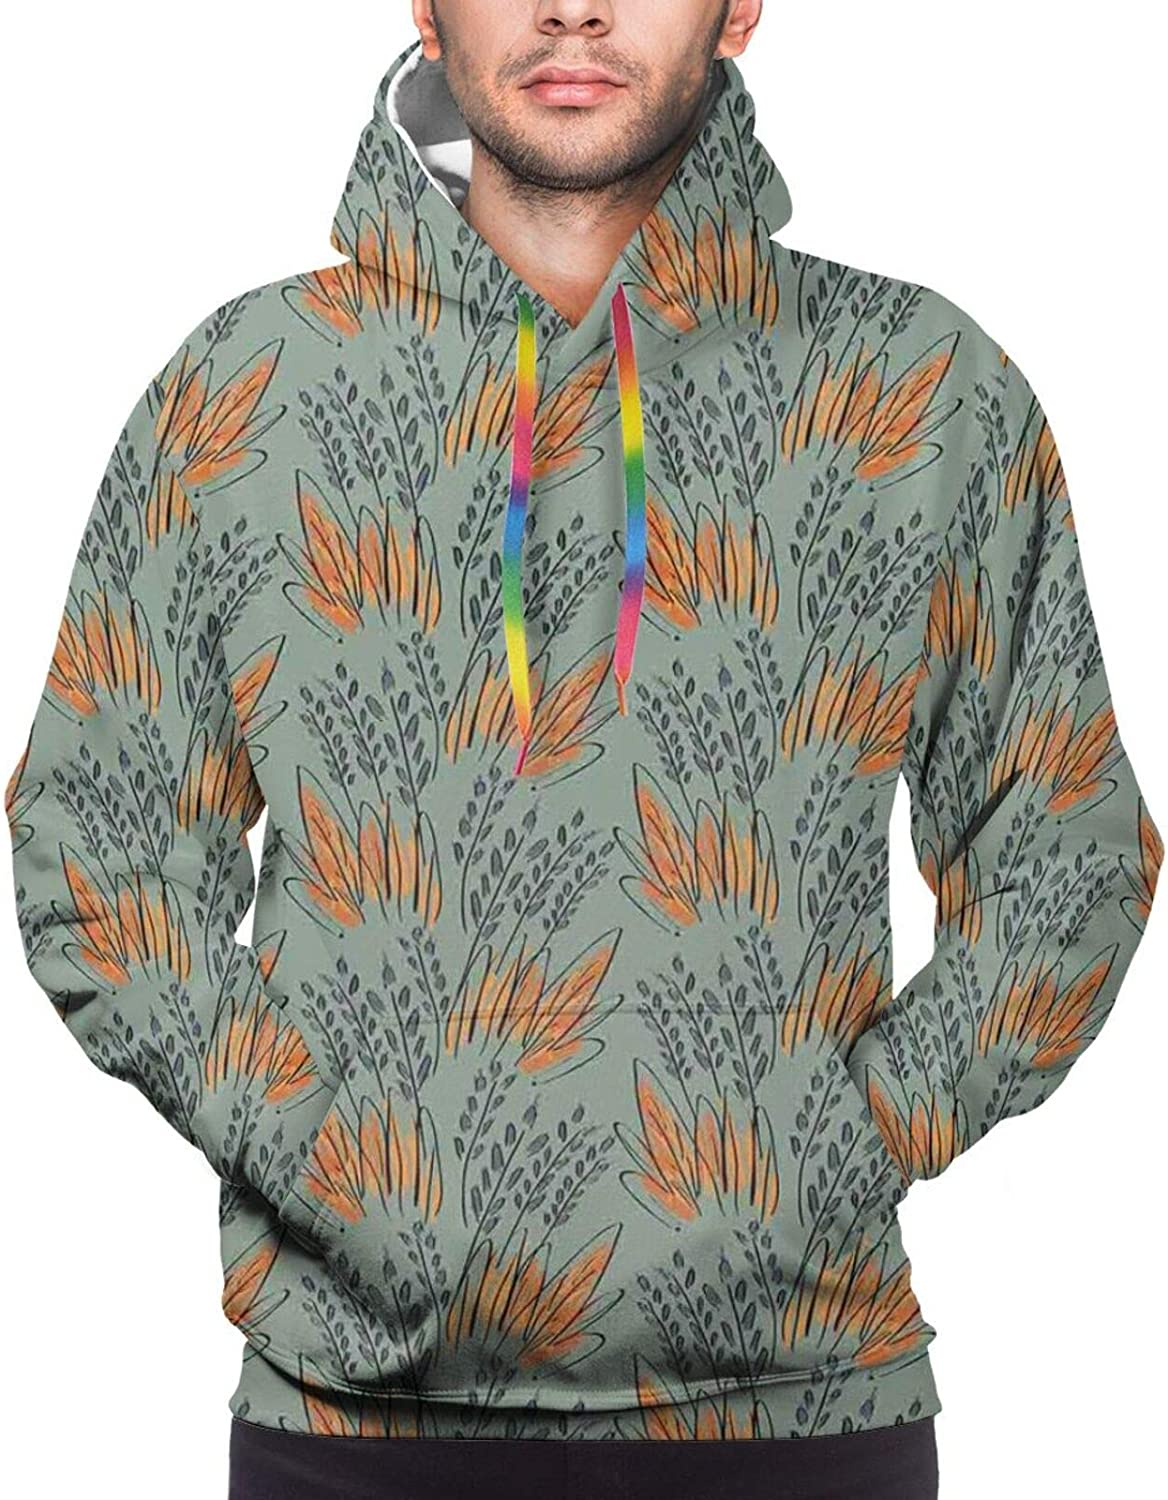 Men's Hoodies Sweatshirts,Sketch Tattoo Style Classic Hand Drawn Bull Figure Animal with Horns Artful Picture